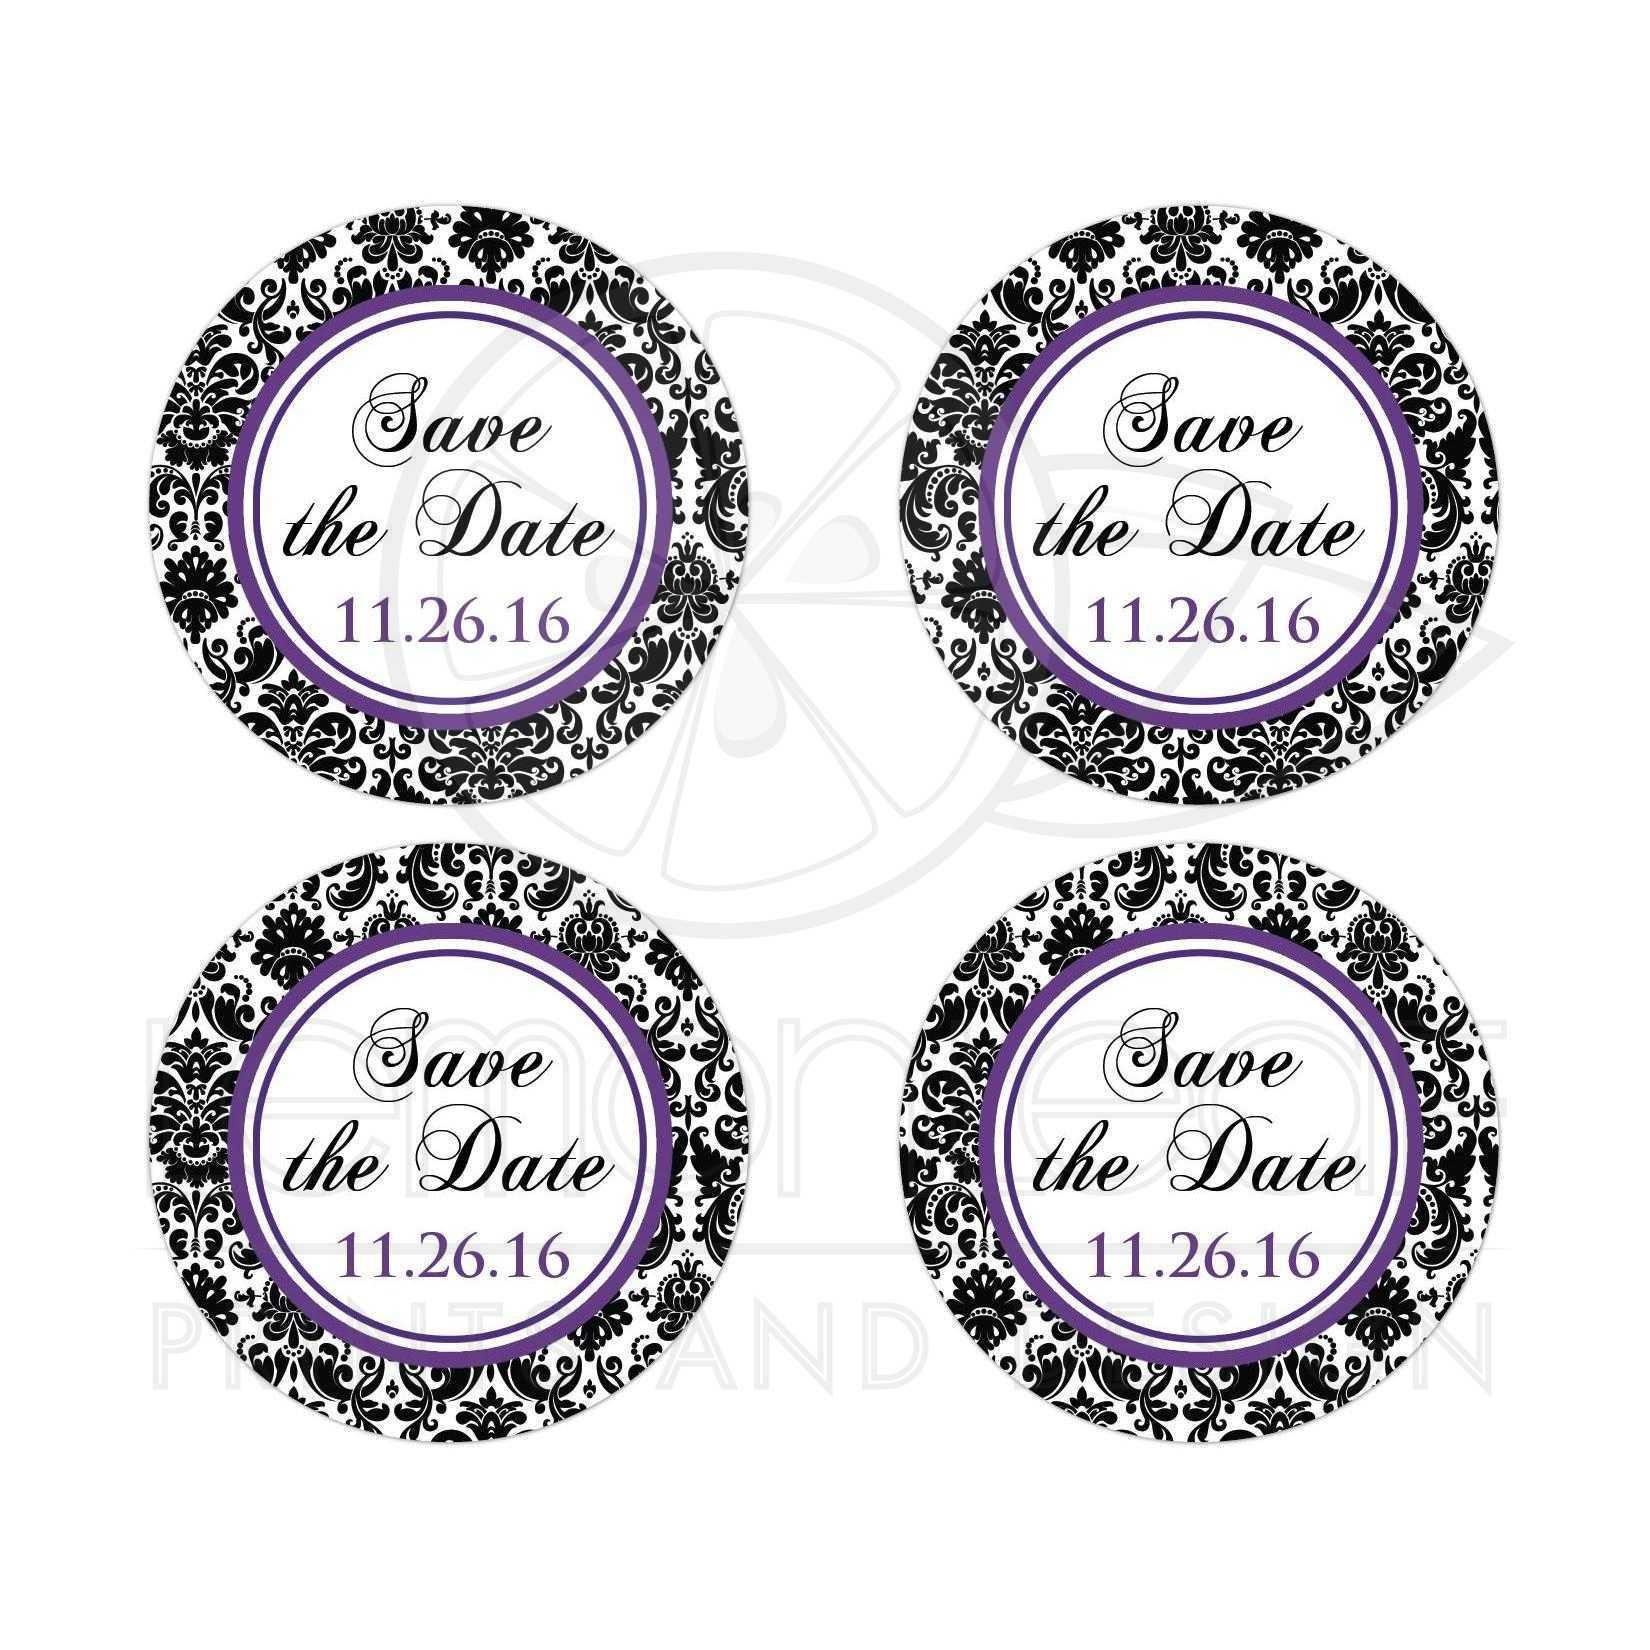 save the date wedding sticker purple black and white damask